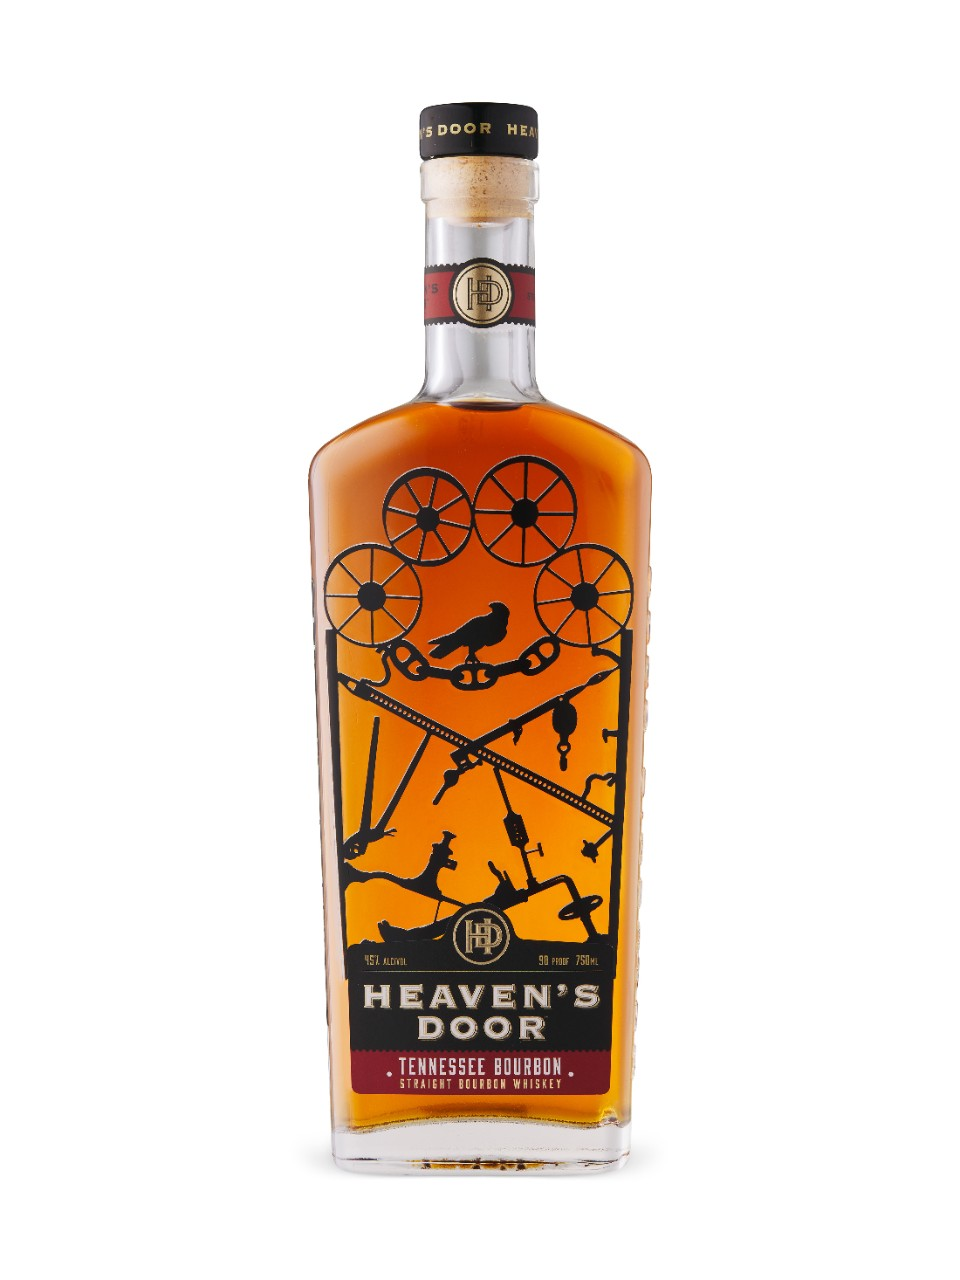 Heaven's Door Tennessee Bourbon from LCBO